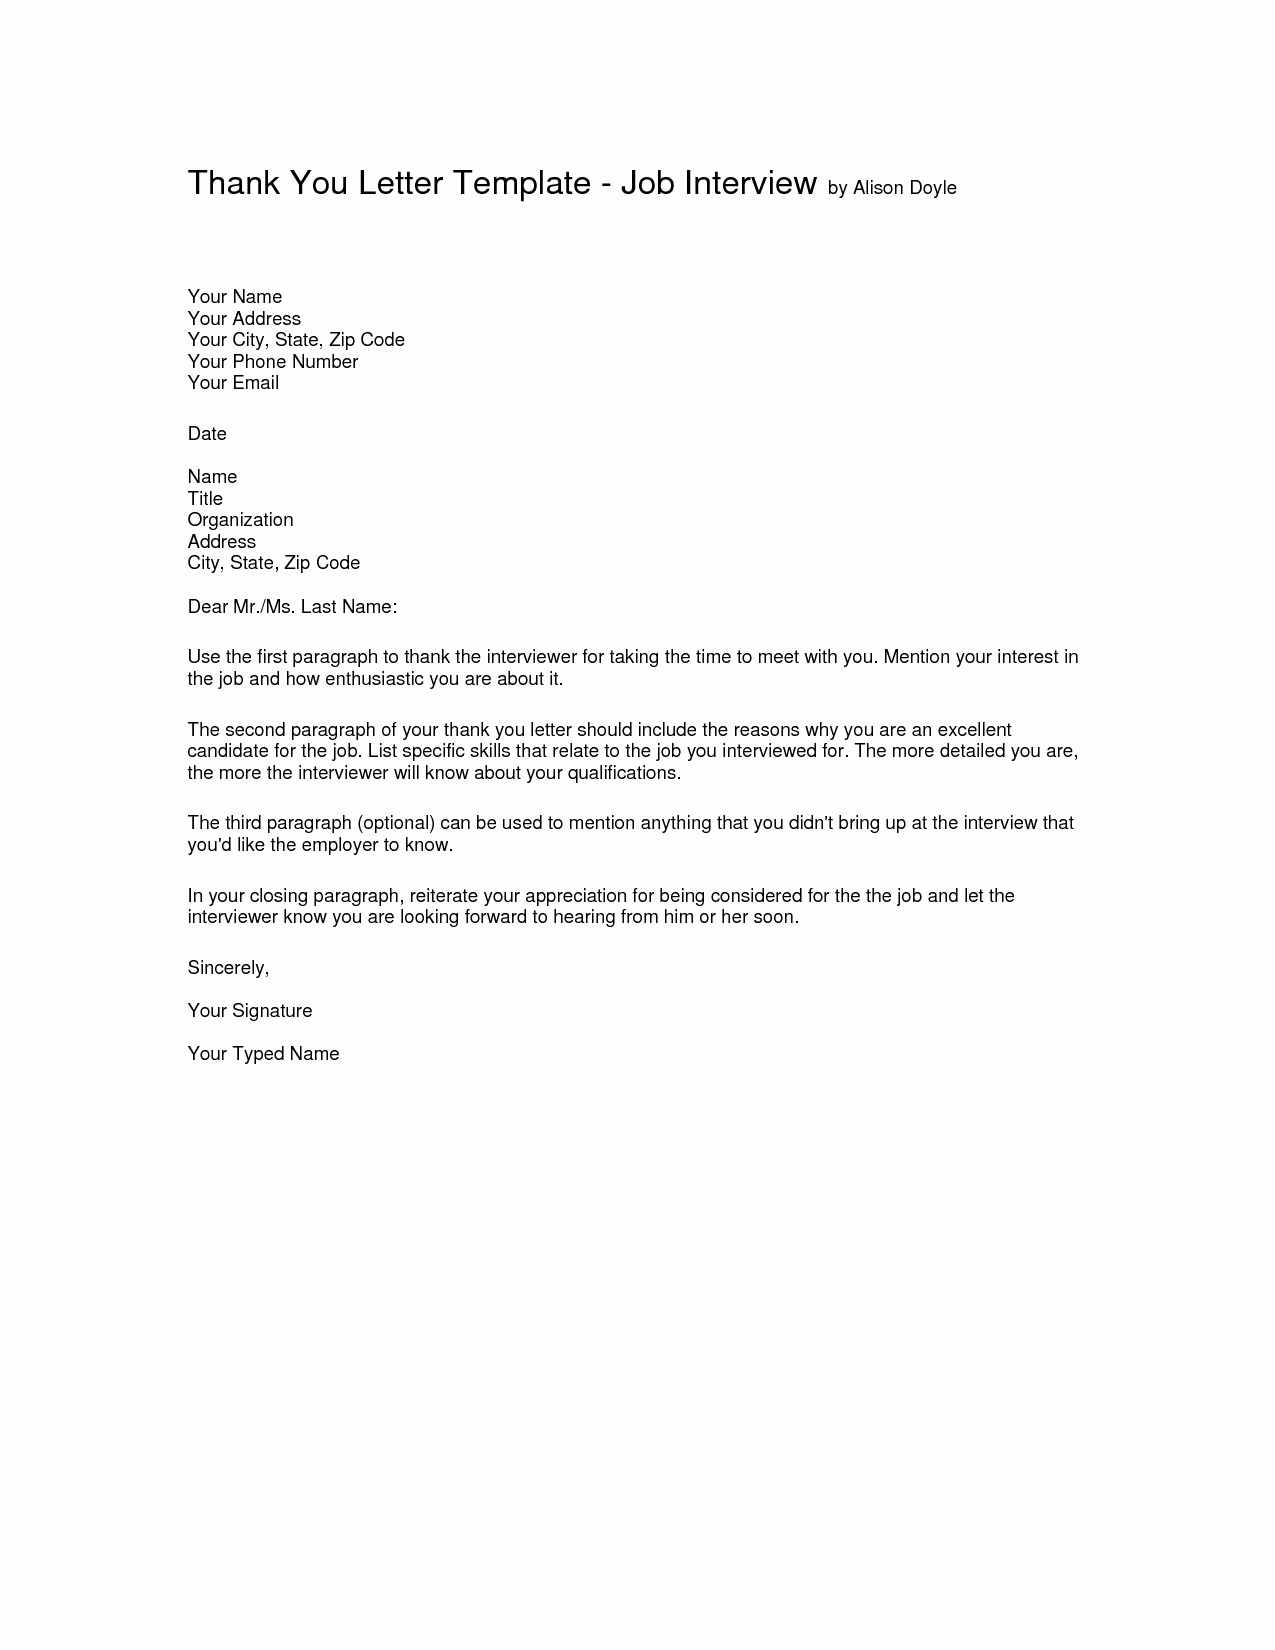 Sample Email after Interview Fresh Interview Thank You Letter Template Thank You Letter